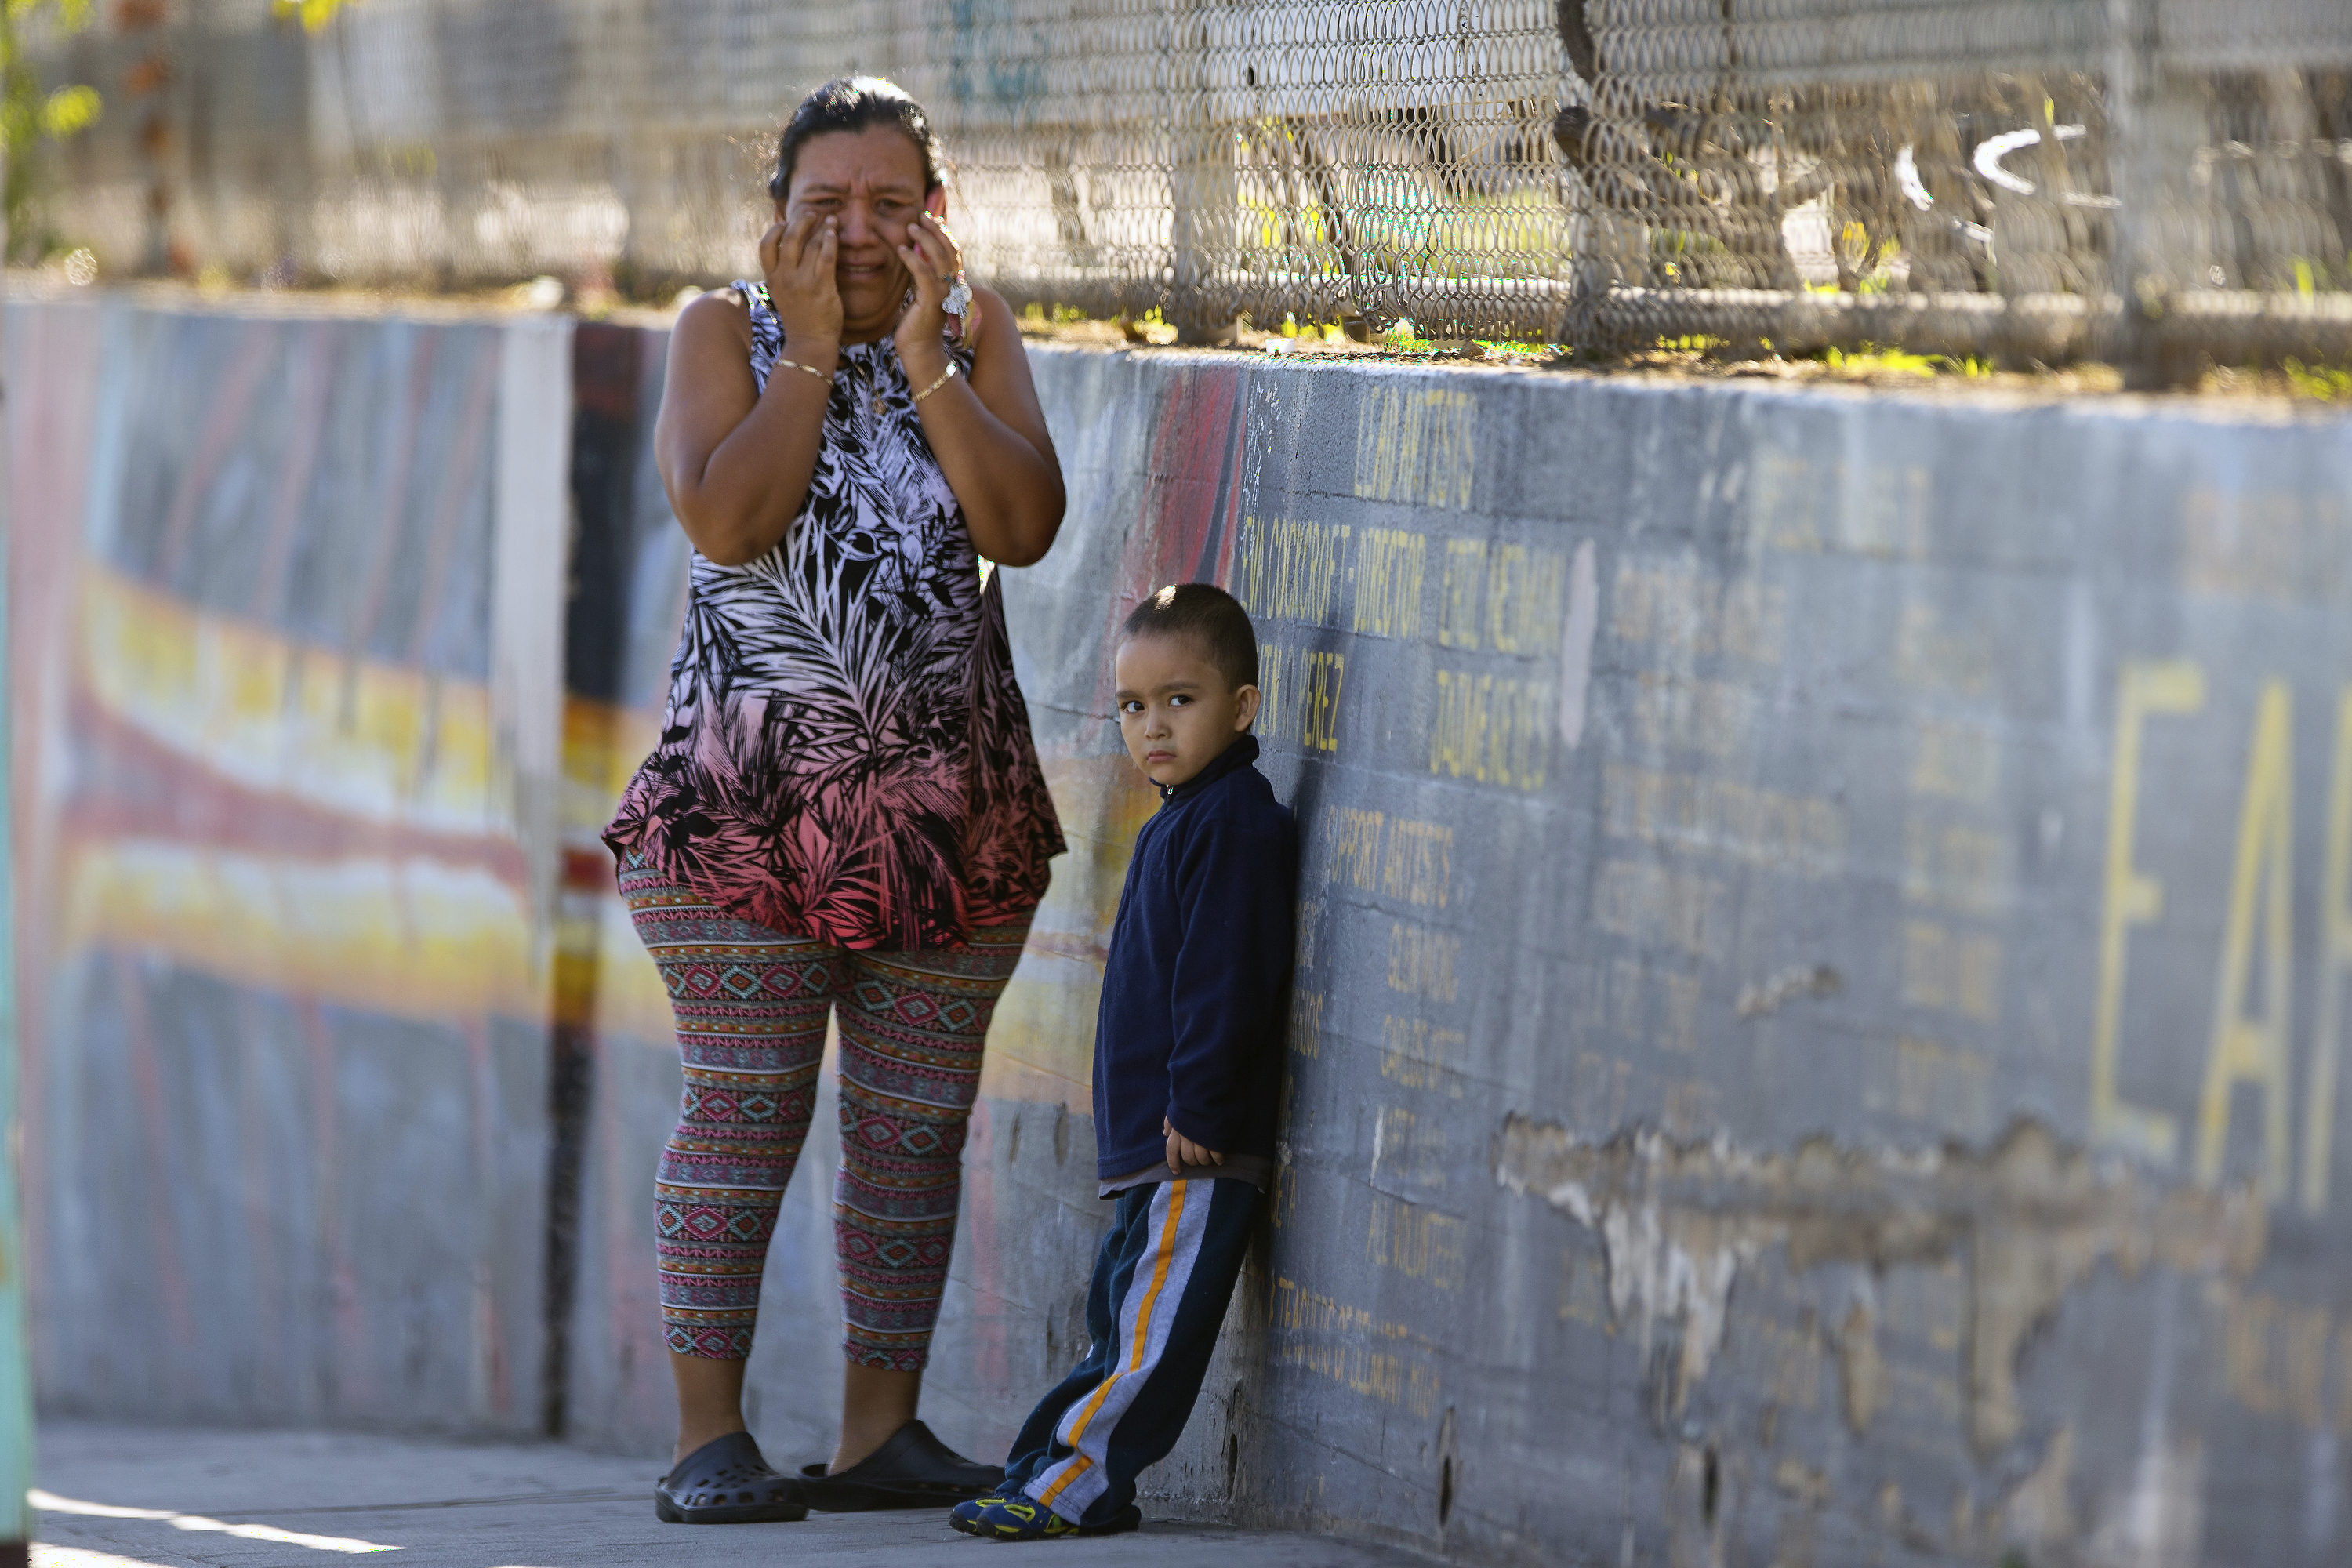 Mother Elizabeth Acevedo and her son Andres, 3, wait for news of her son Jose an eight-grader student at the Belmont High School in Los Angeles Thursday, Feb. 1, 2018. Two students were shot and wounded, one critically, inside a Los Angeles middle school classroom Thursday morning and police arrested a female student suspect, authorities said. (Damian Dovarganes)